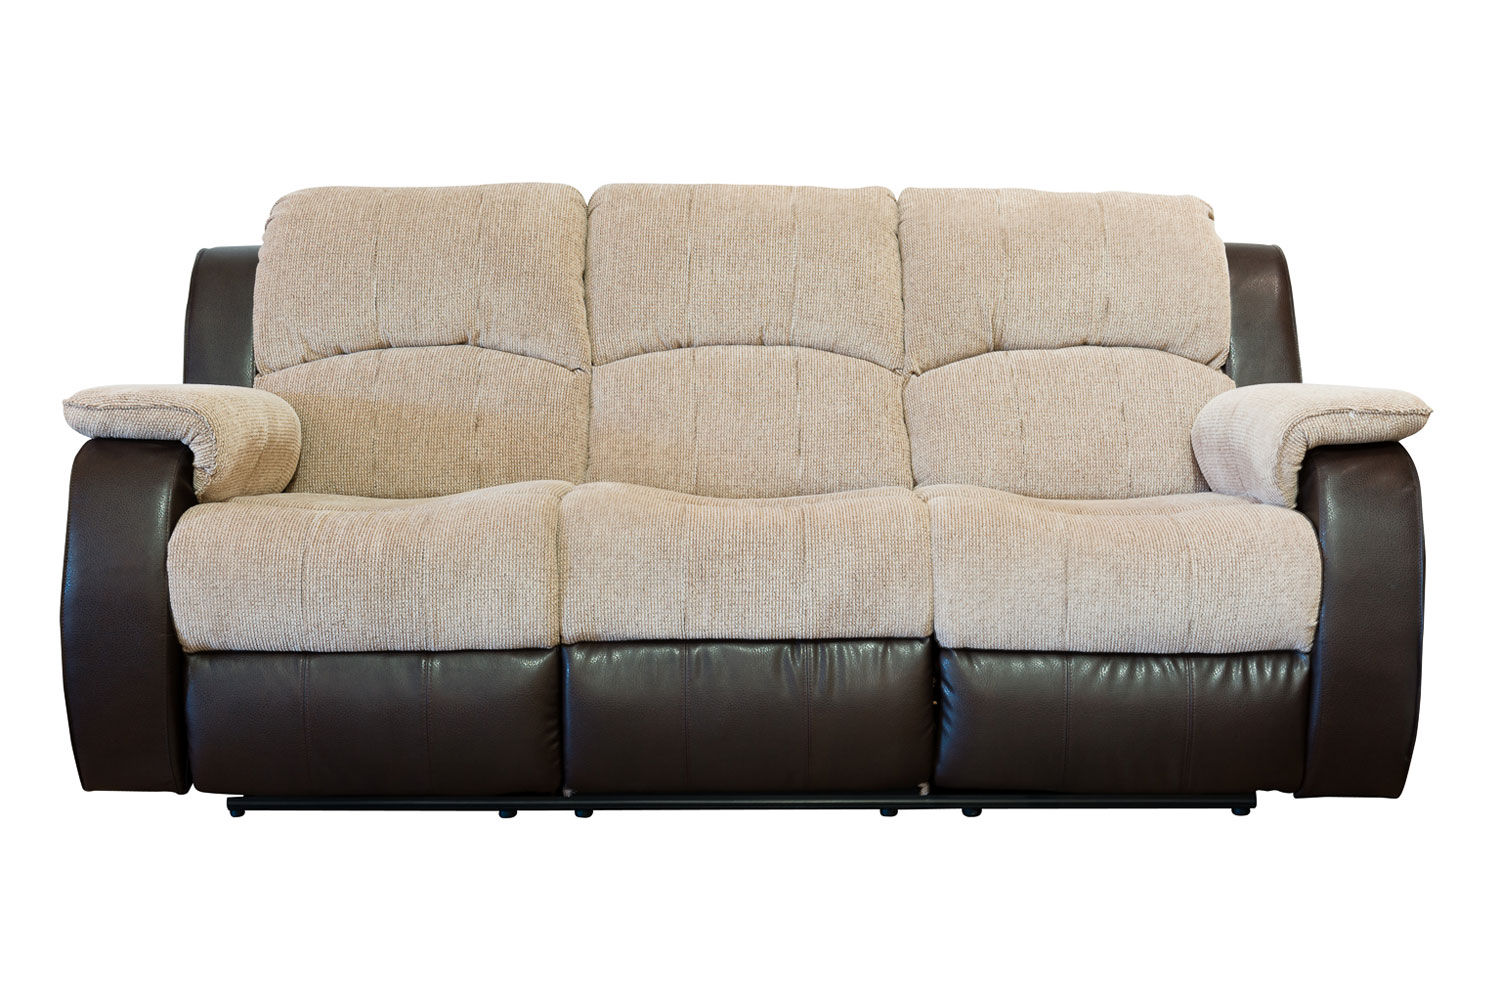 funky sofas ireland made in america 3 seat reclining sofa sofology veyron bison brown x1 large